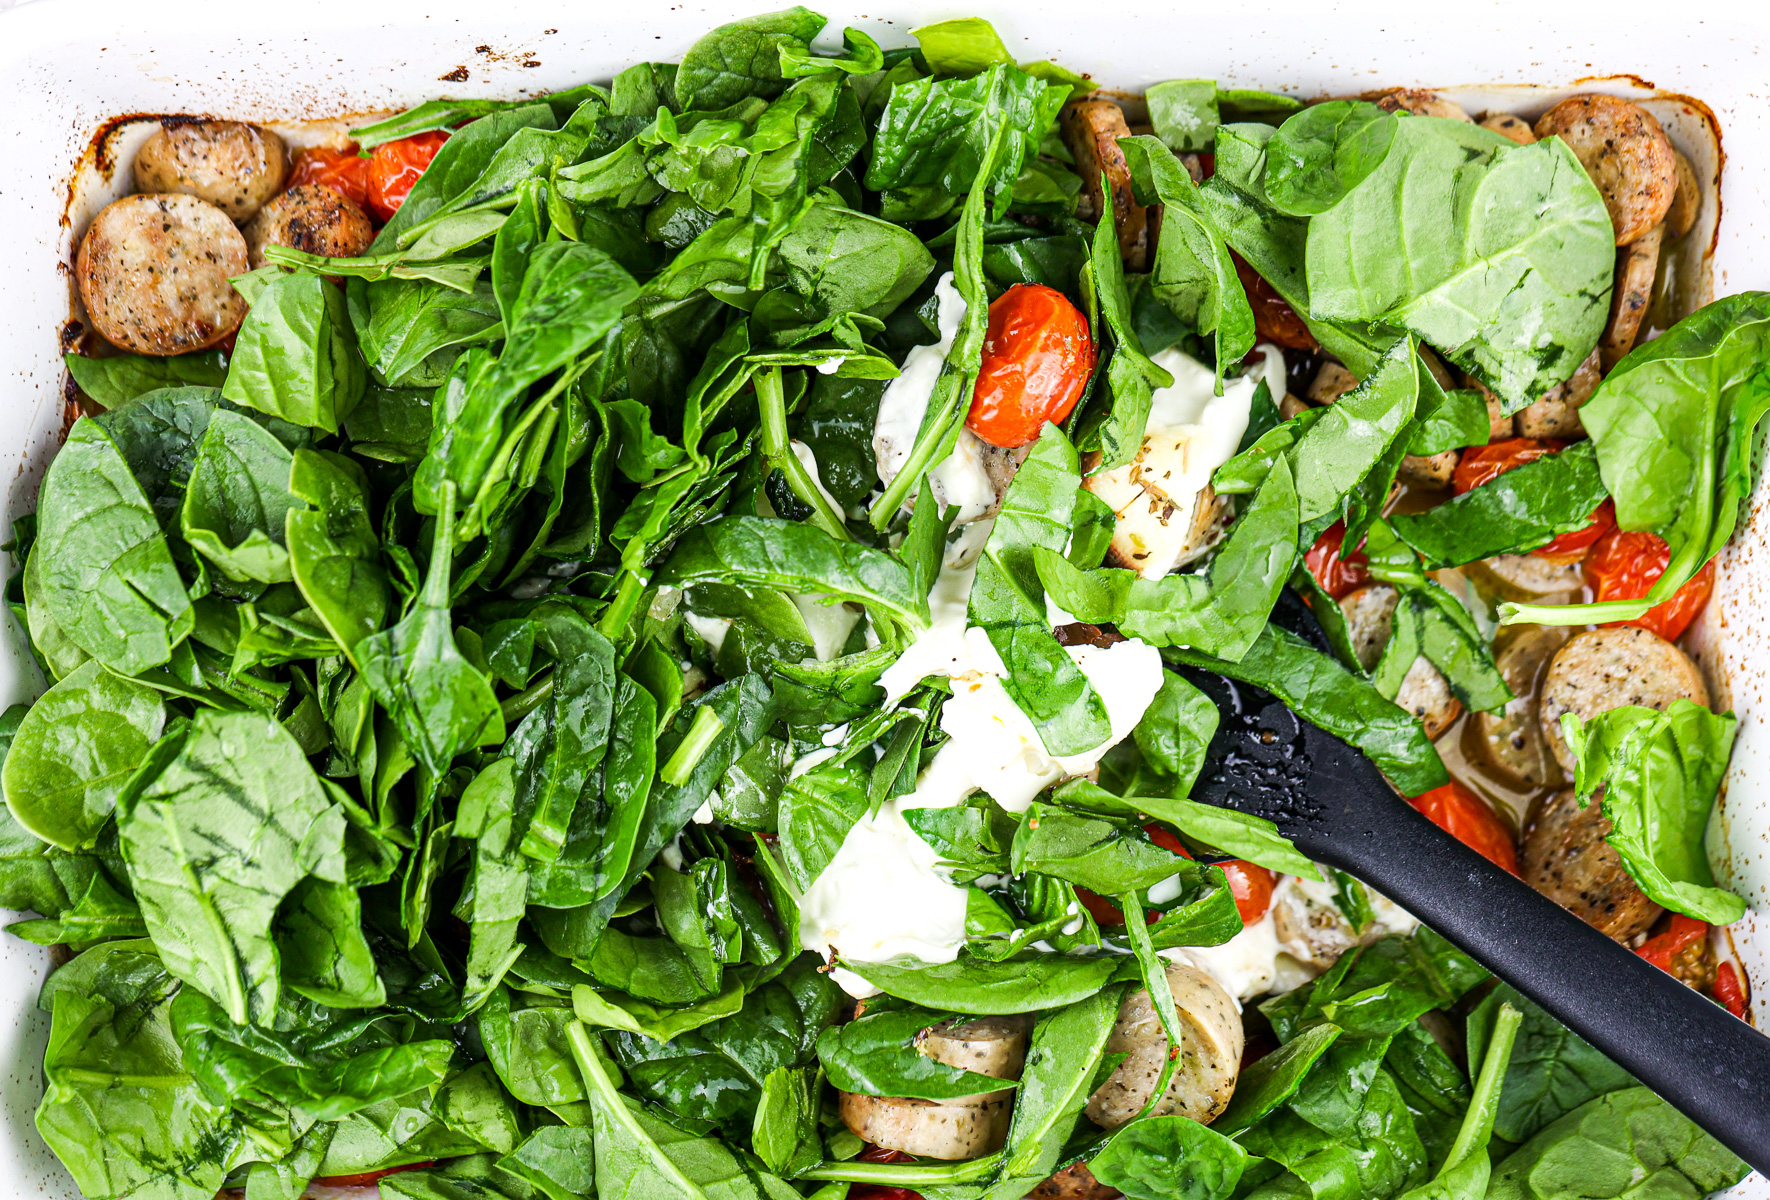 Bed of spinach with spatula mixing it into casserole dish.